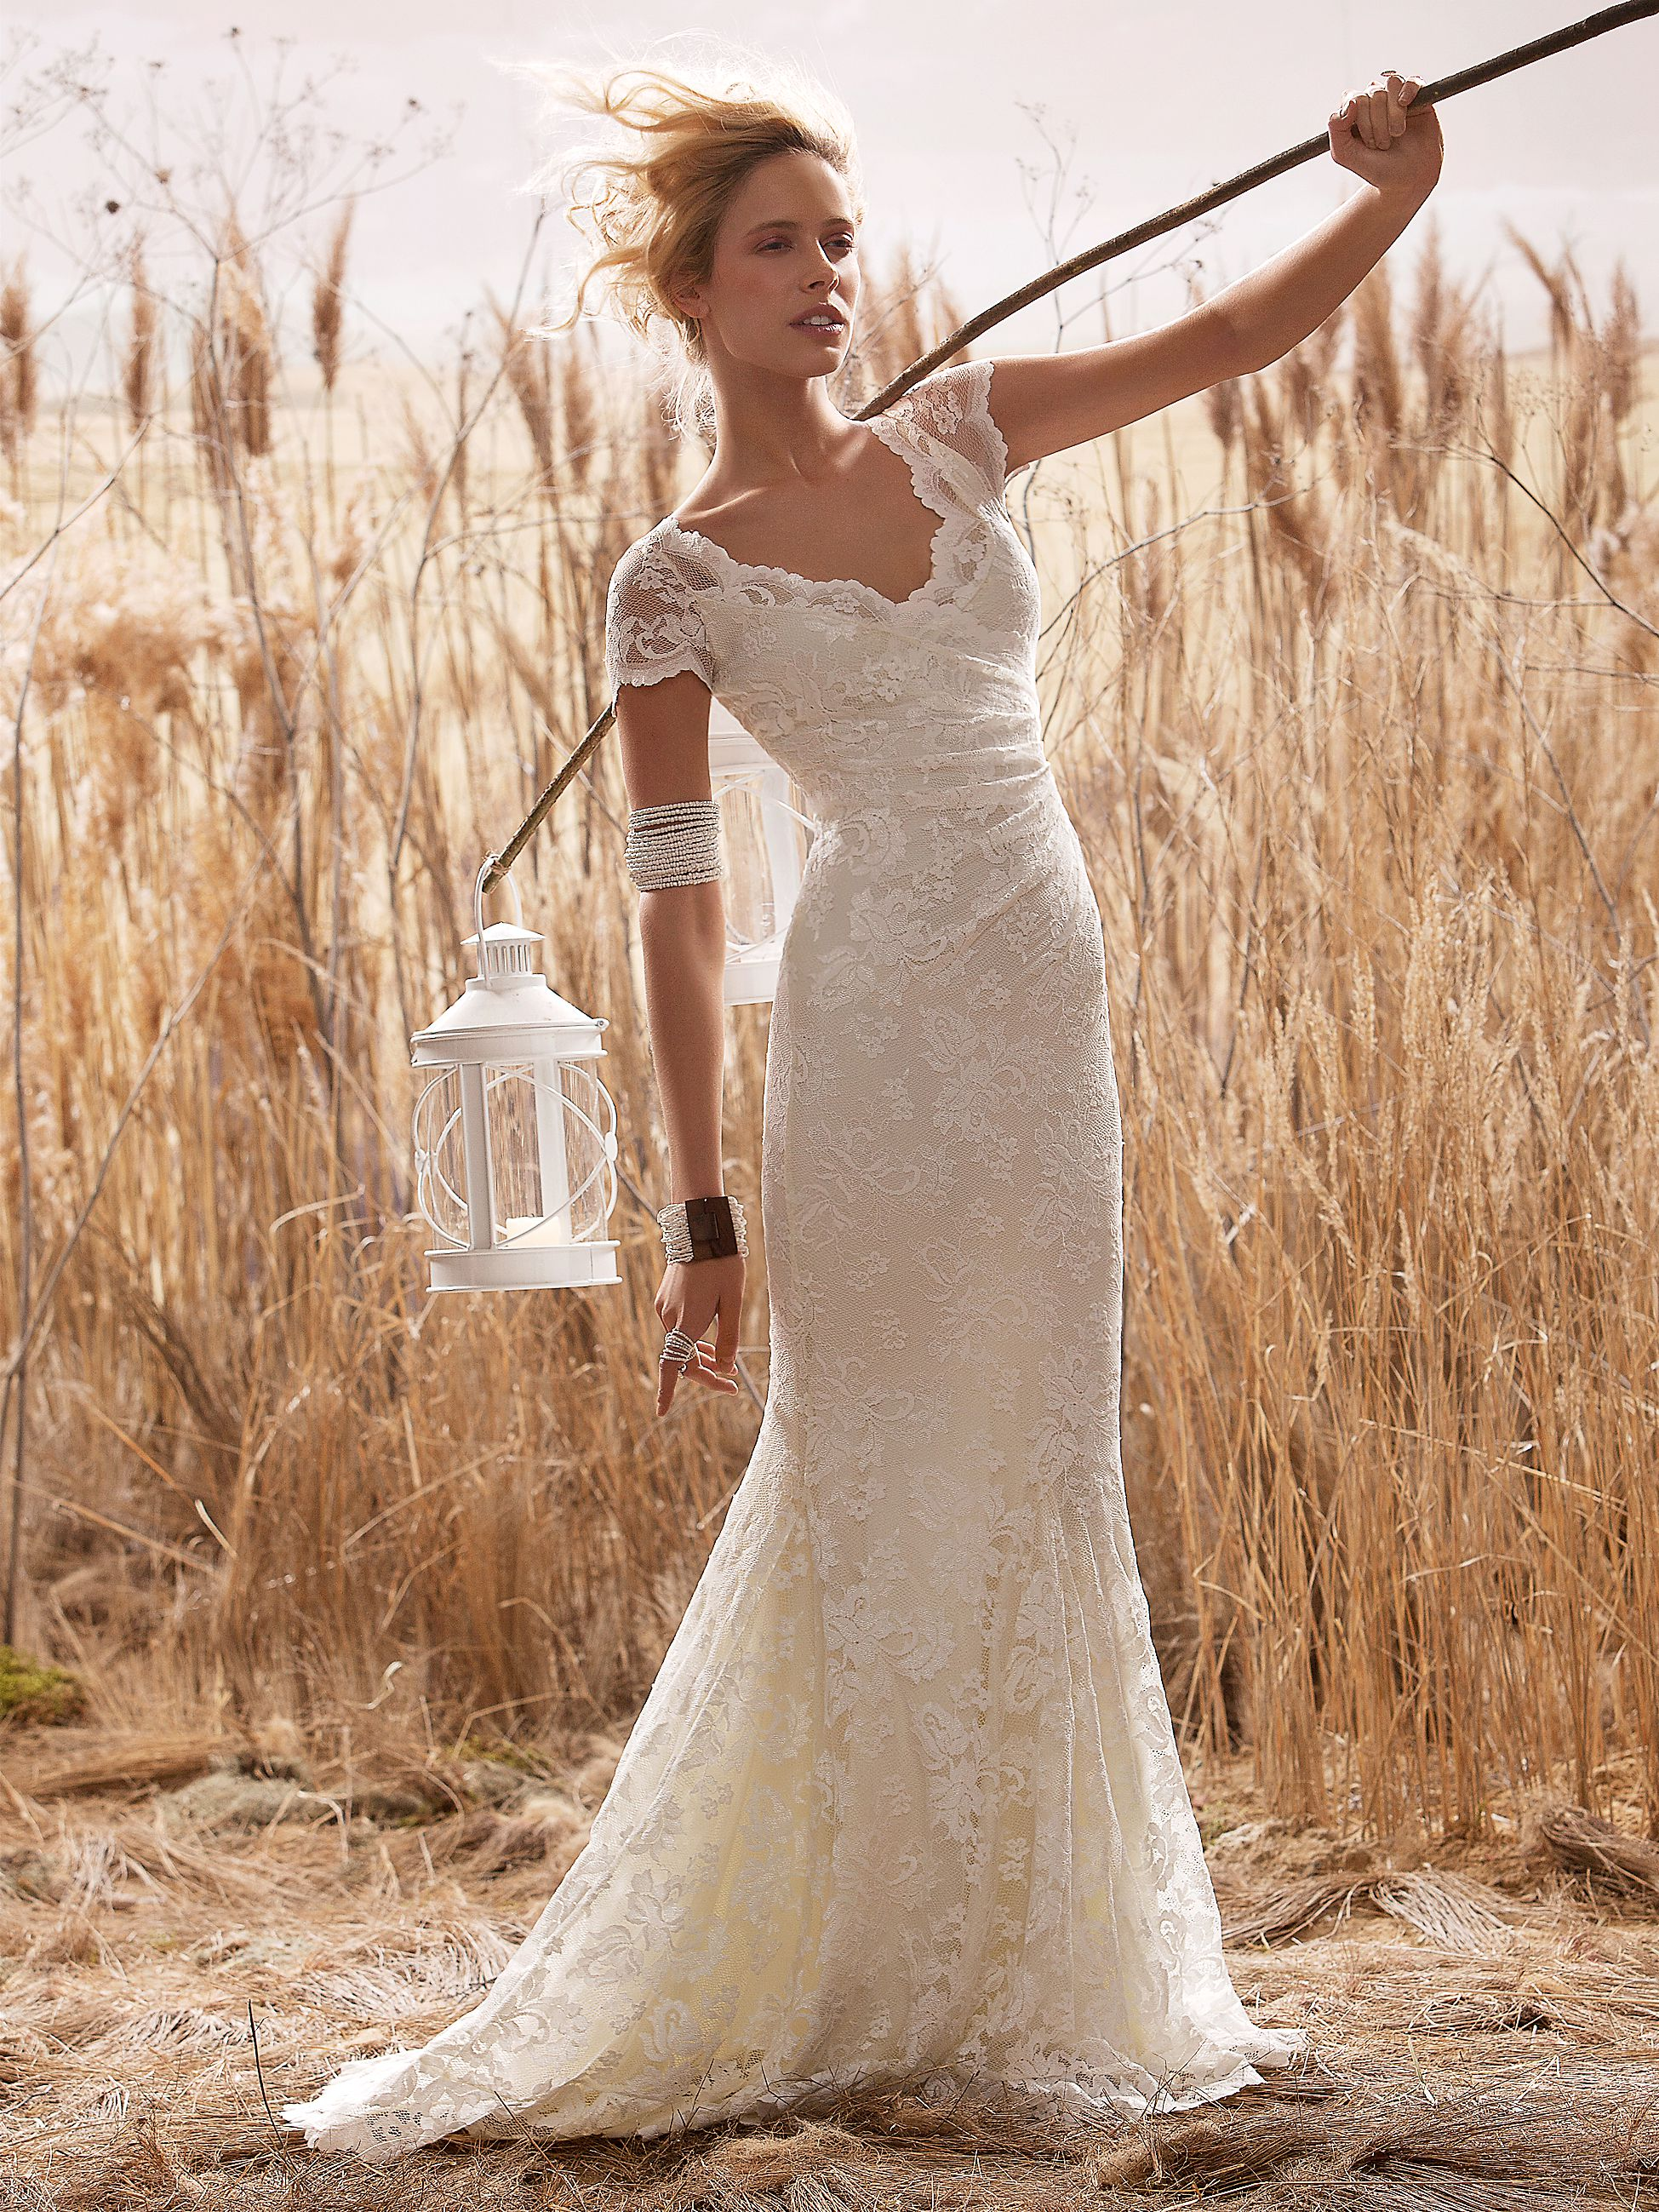 Wedding Gowns From Olvi's - Rustic Wedding Chic - photo#10